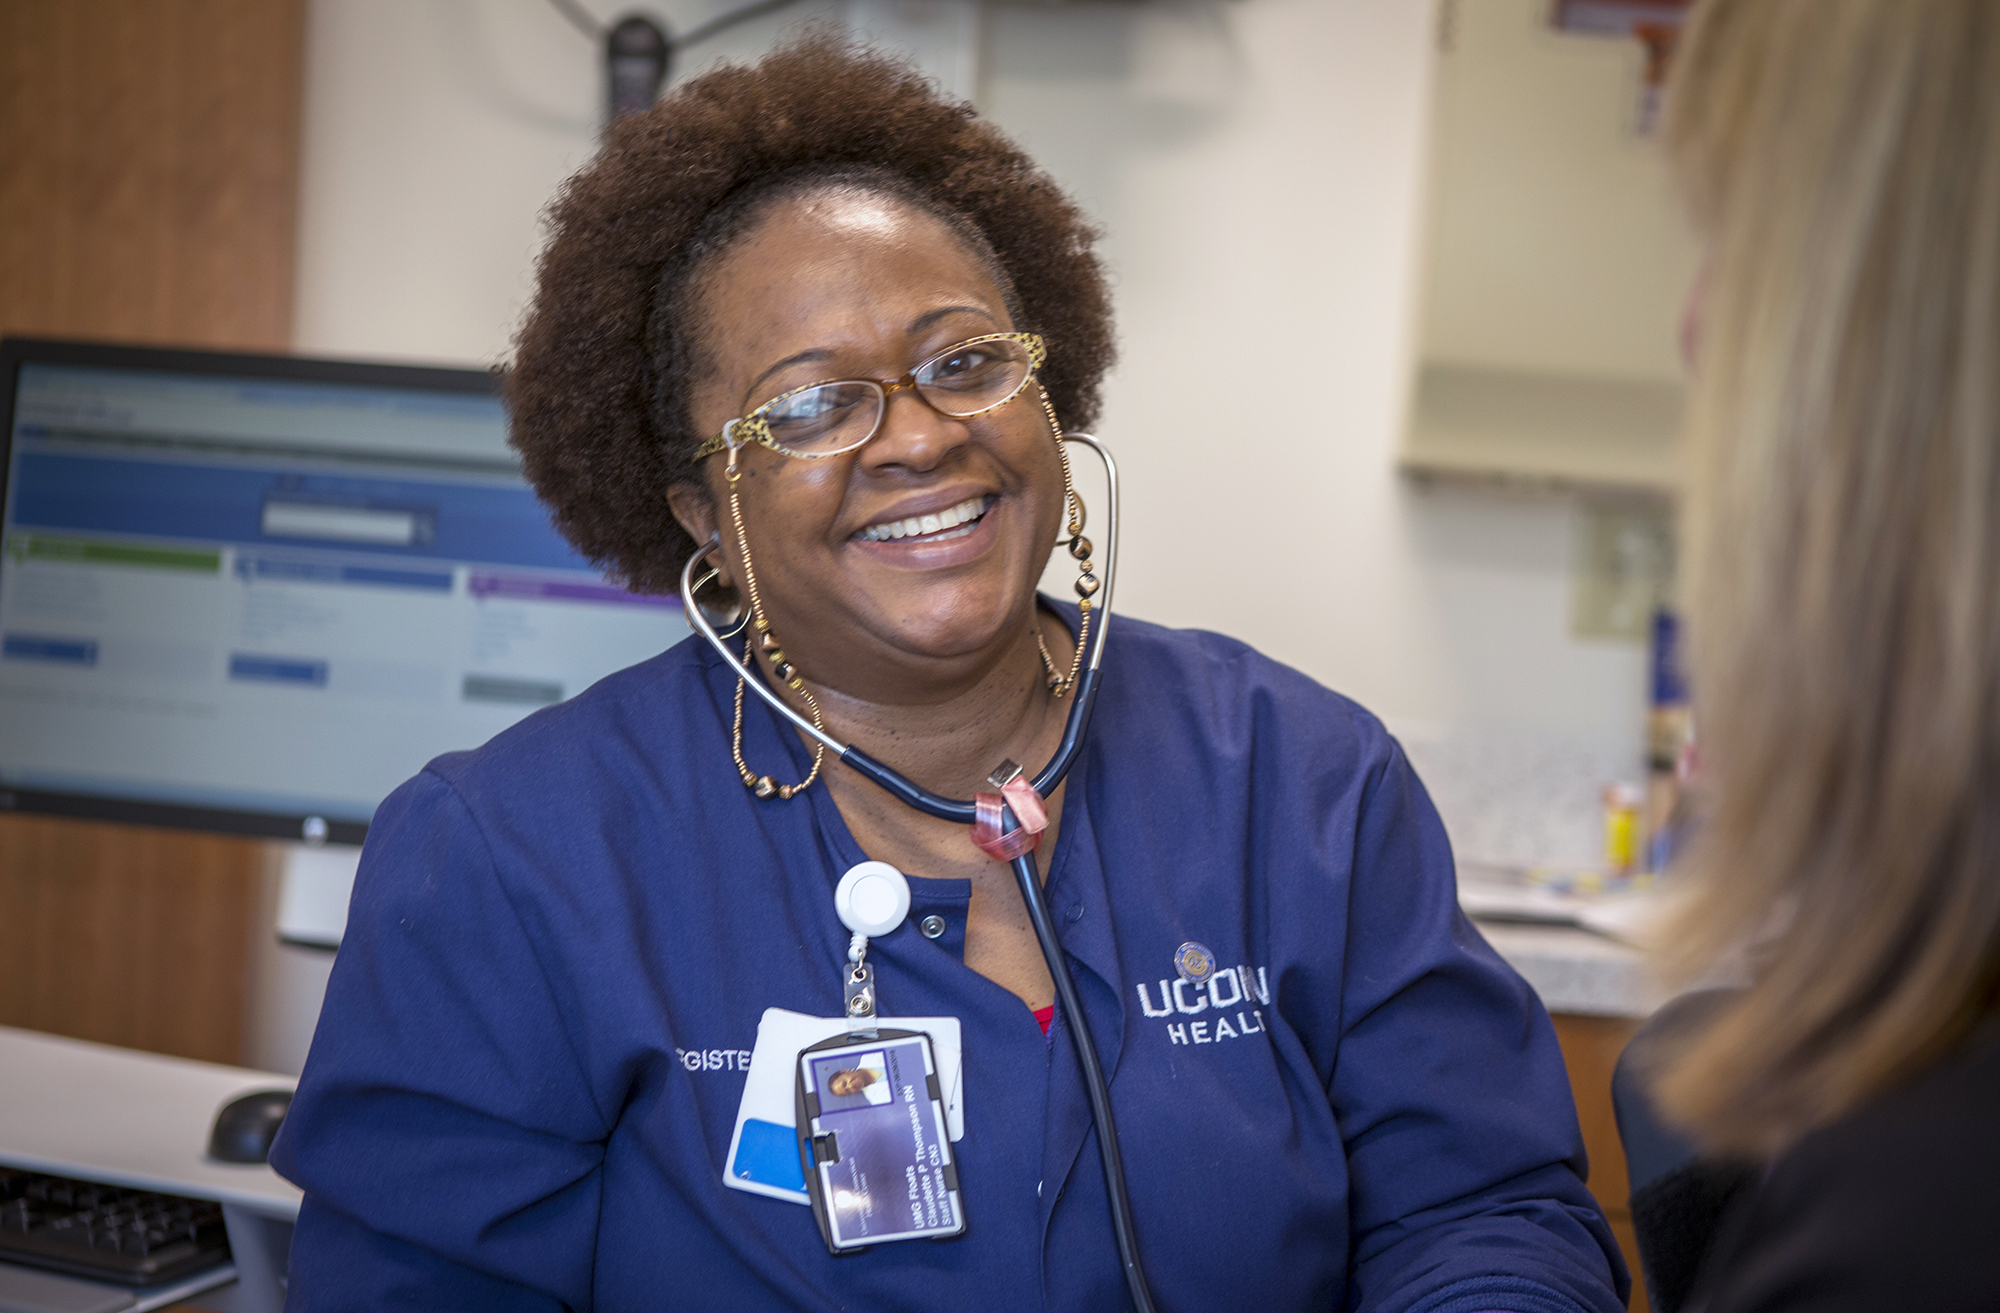 A nurse talks with a patient at UConn Health on Feb. 11, 2016. (Paul Horton/UConn Photo)